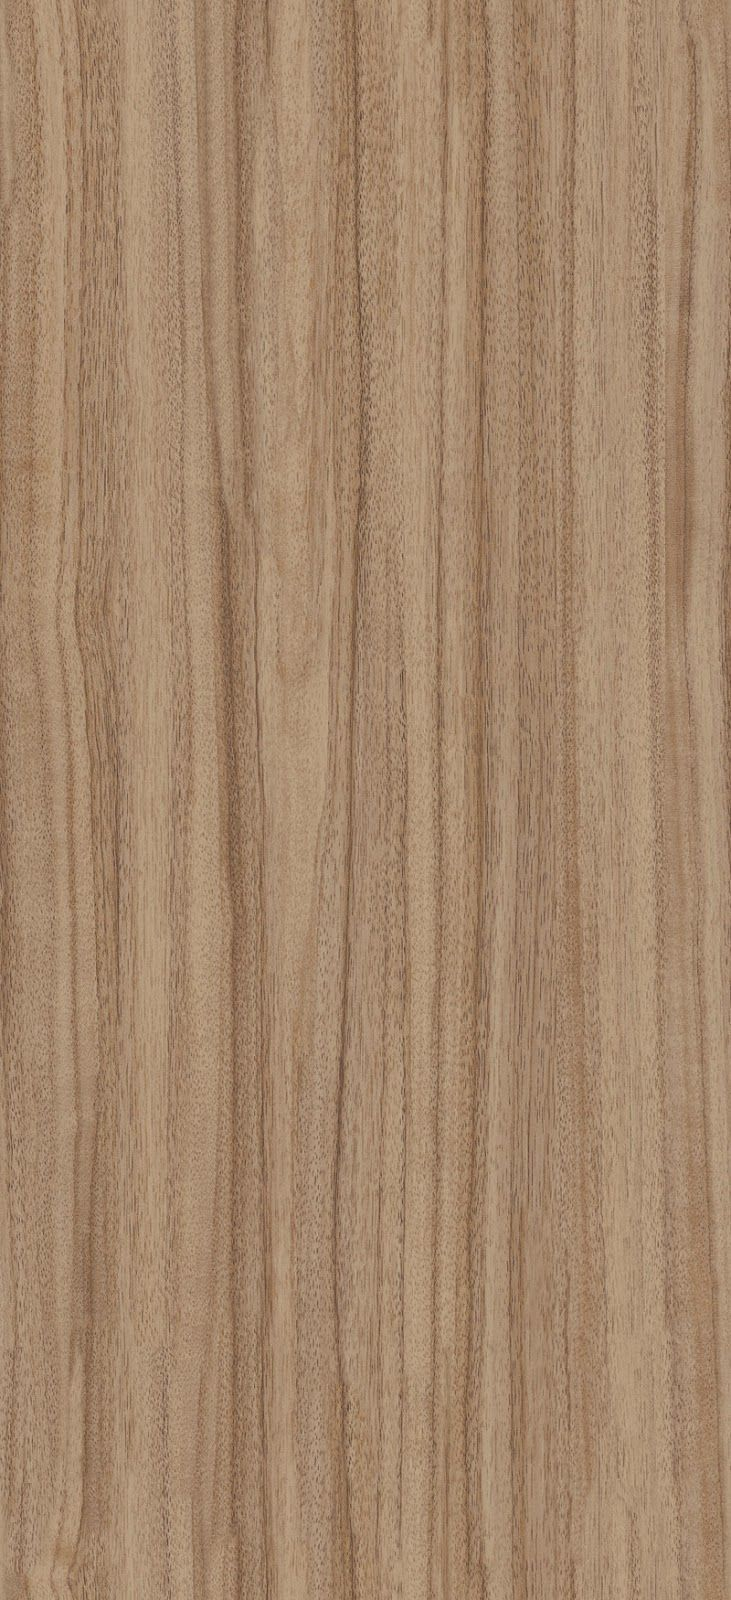 Seamless French Walnut Wood Texture texturise